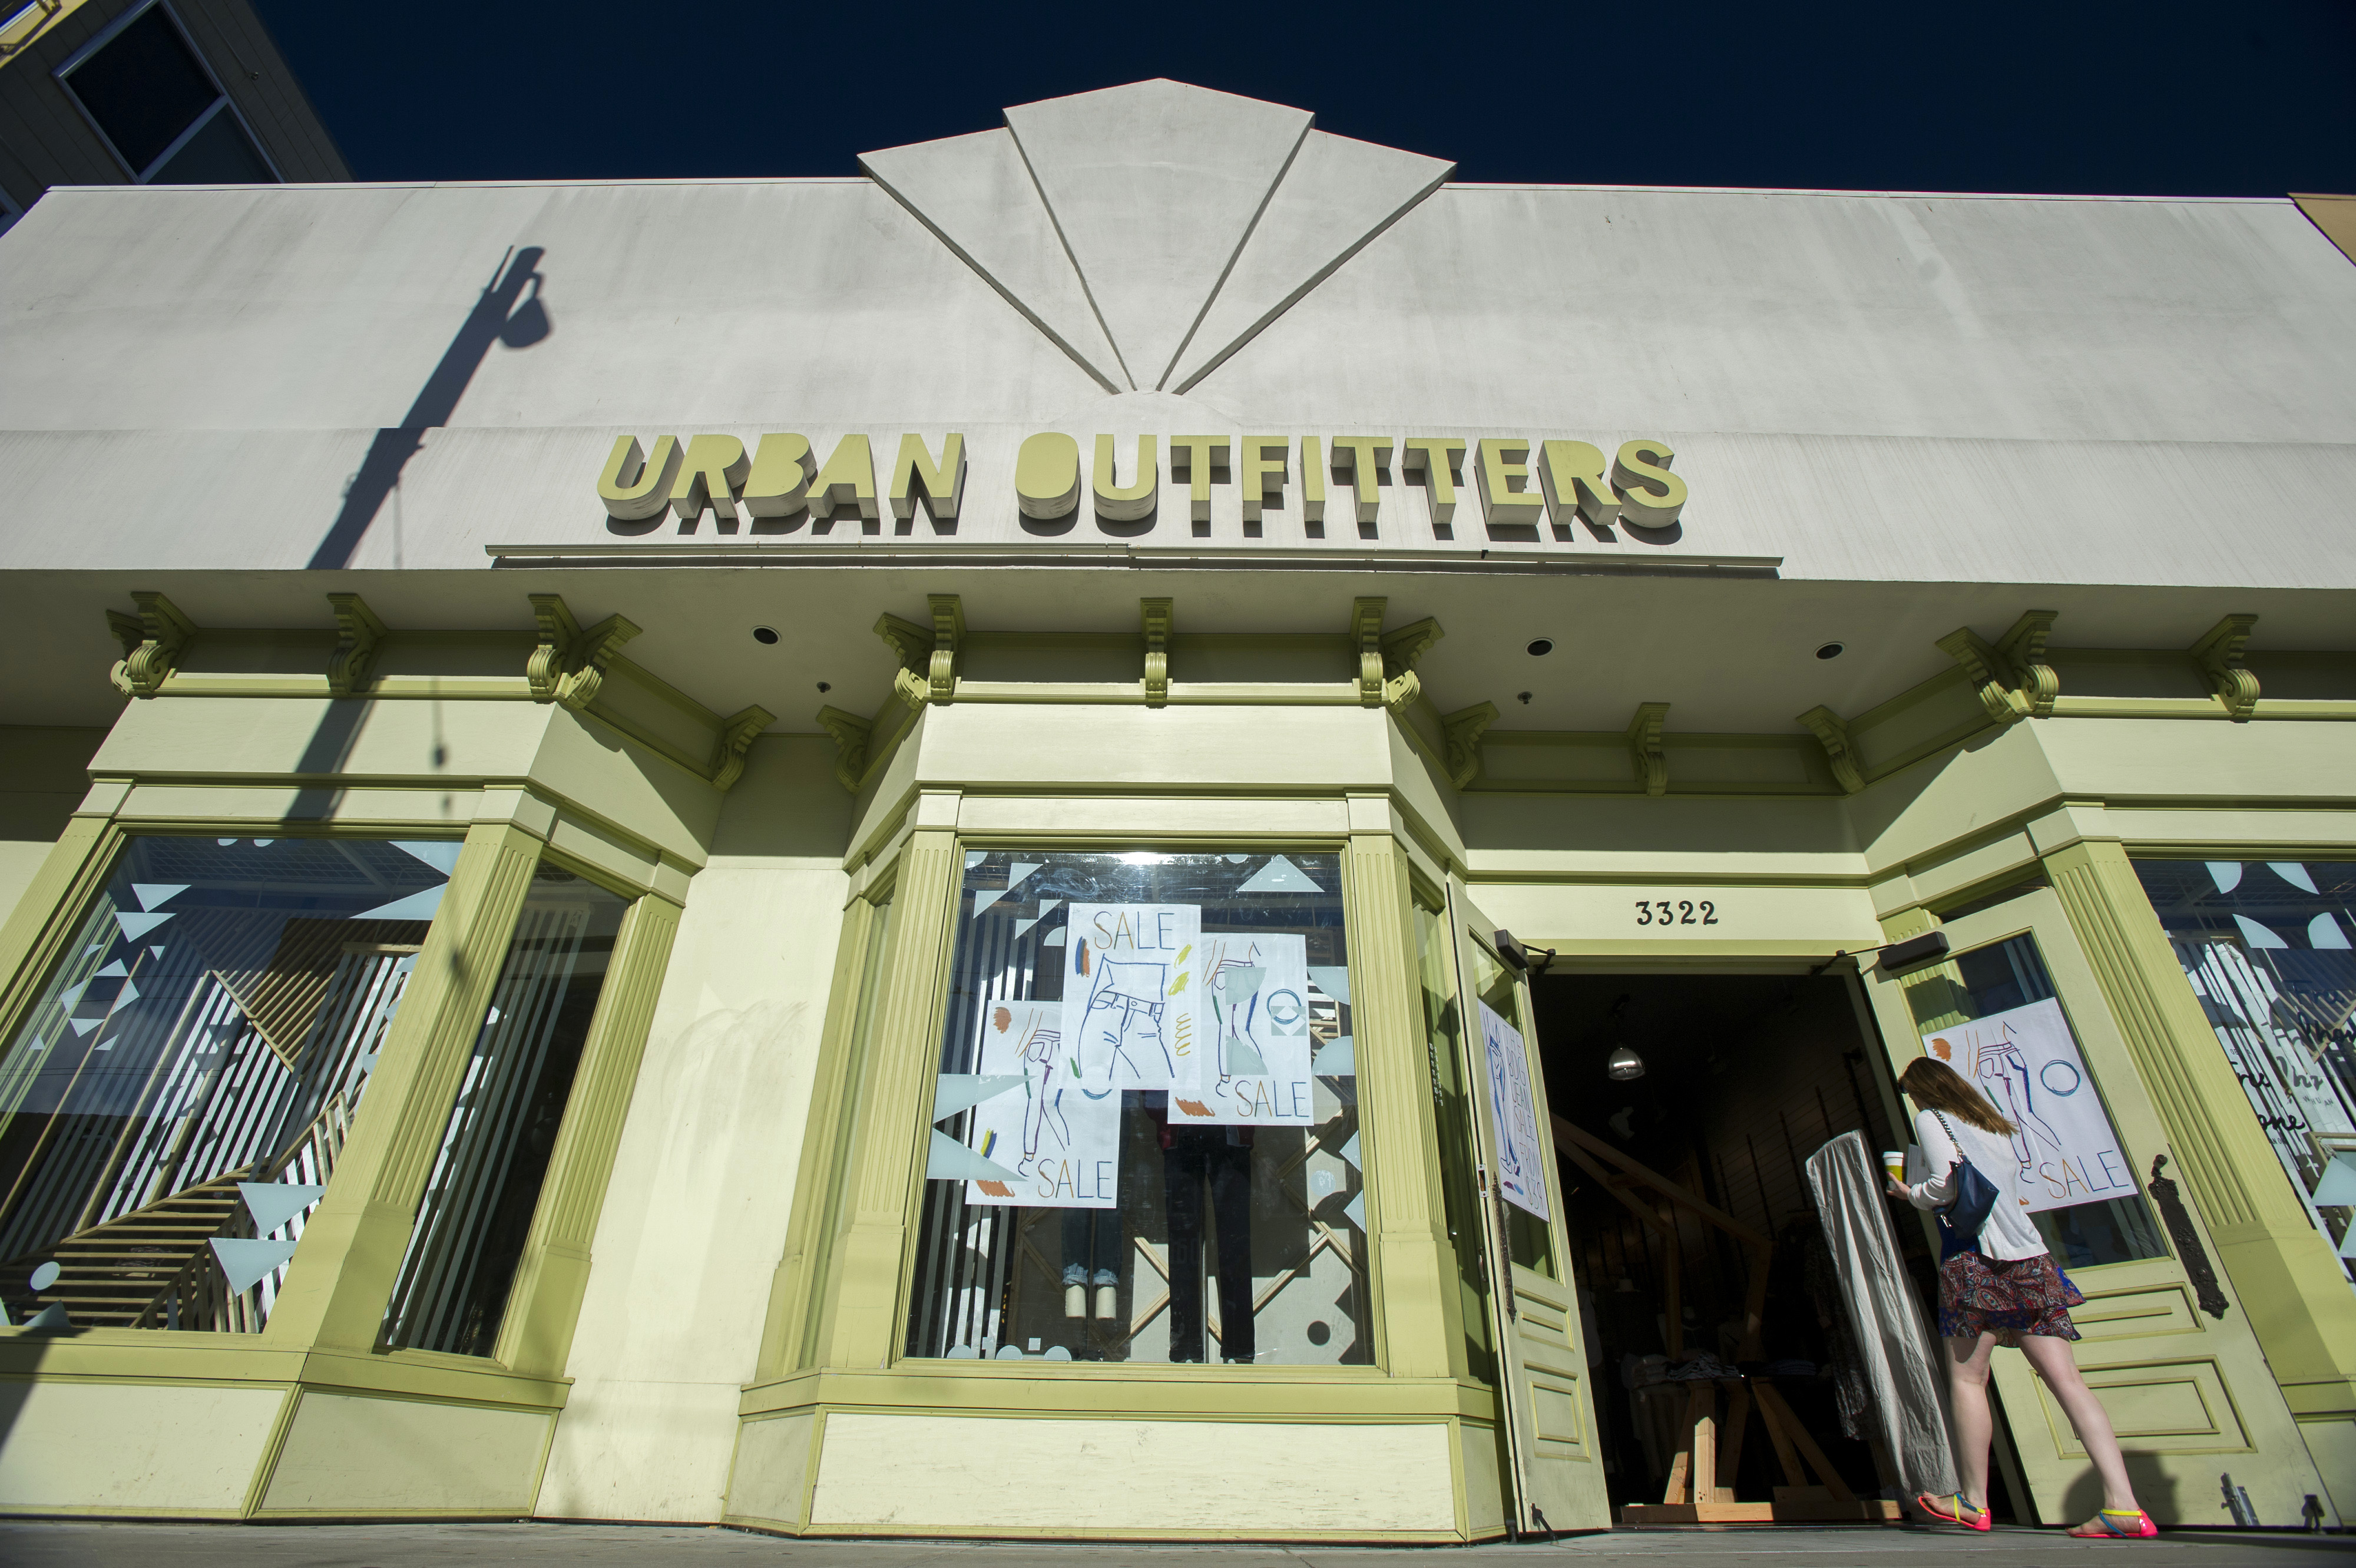 An Urban Outfitters Inc. Store As Earnings Figures Are Released